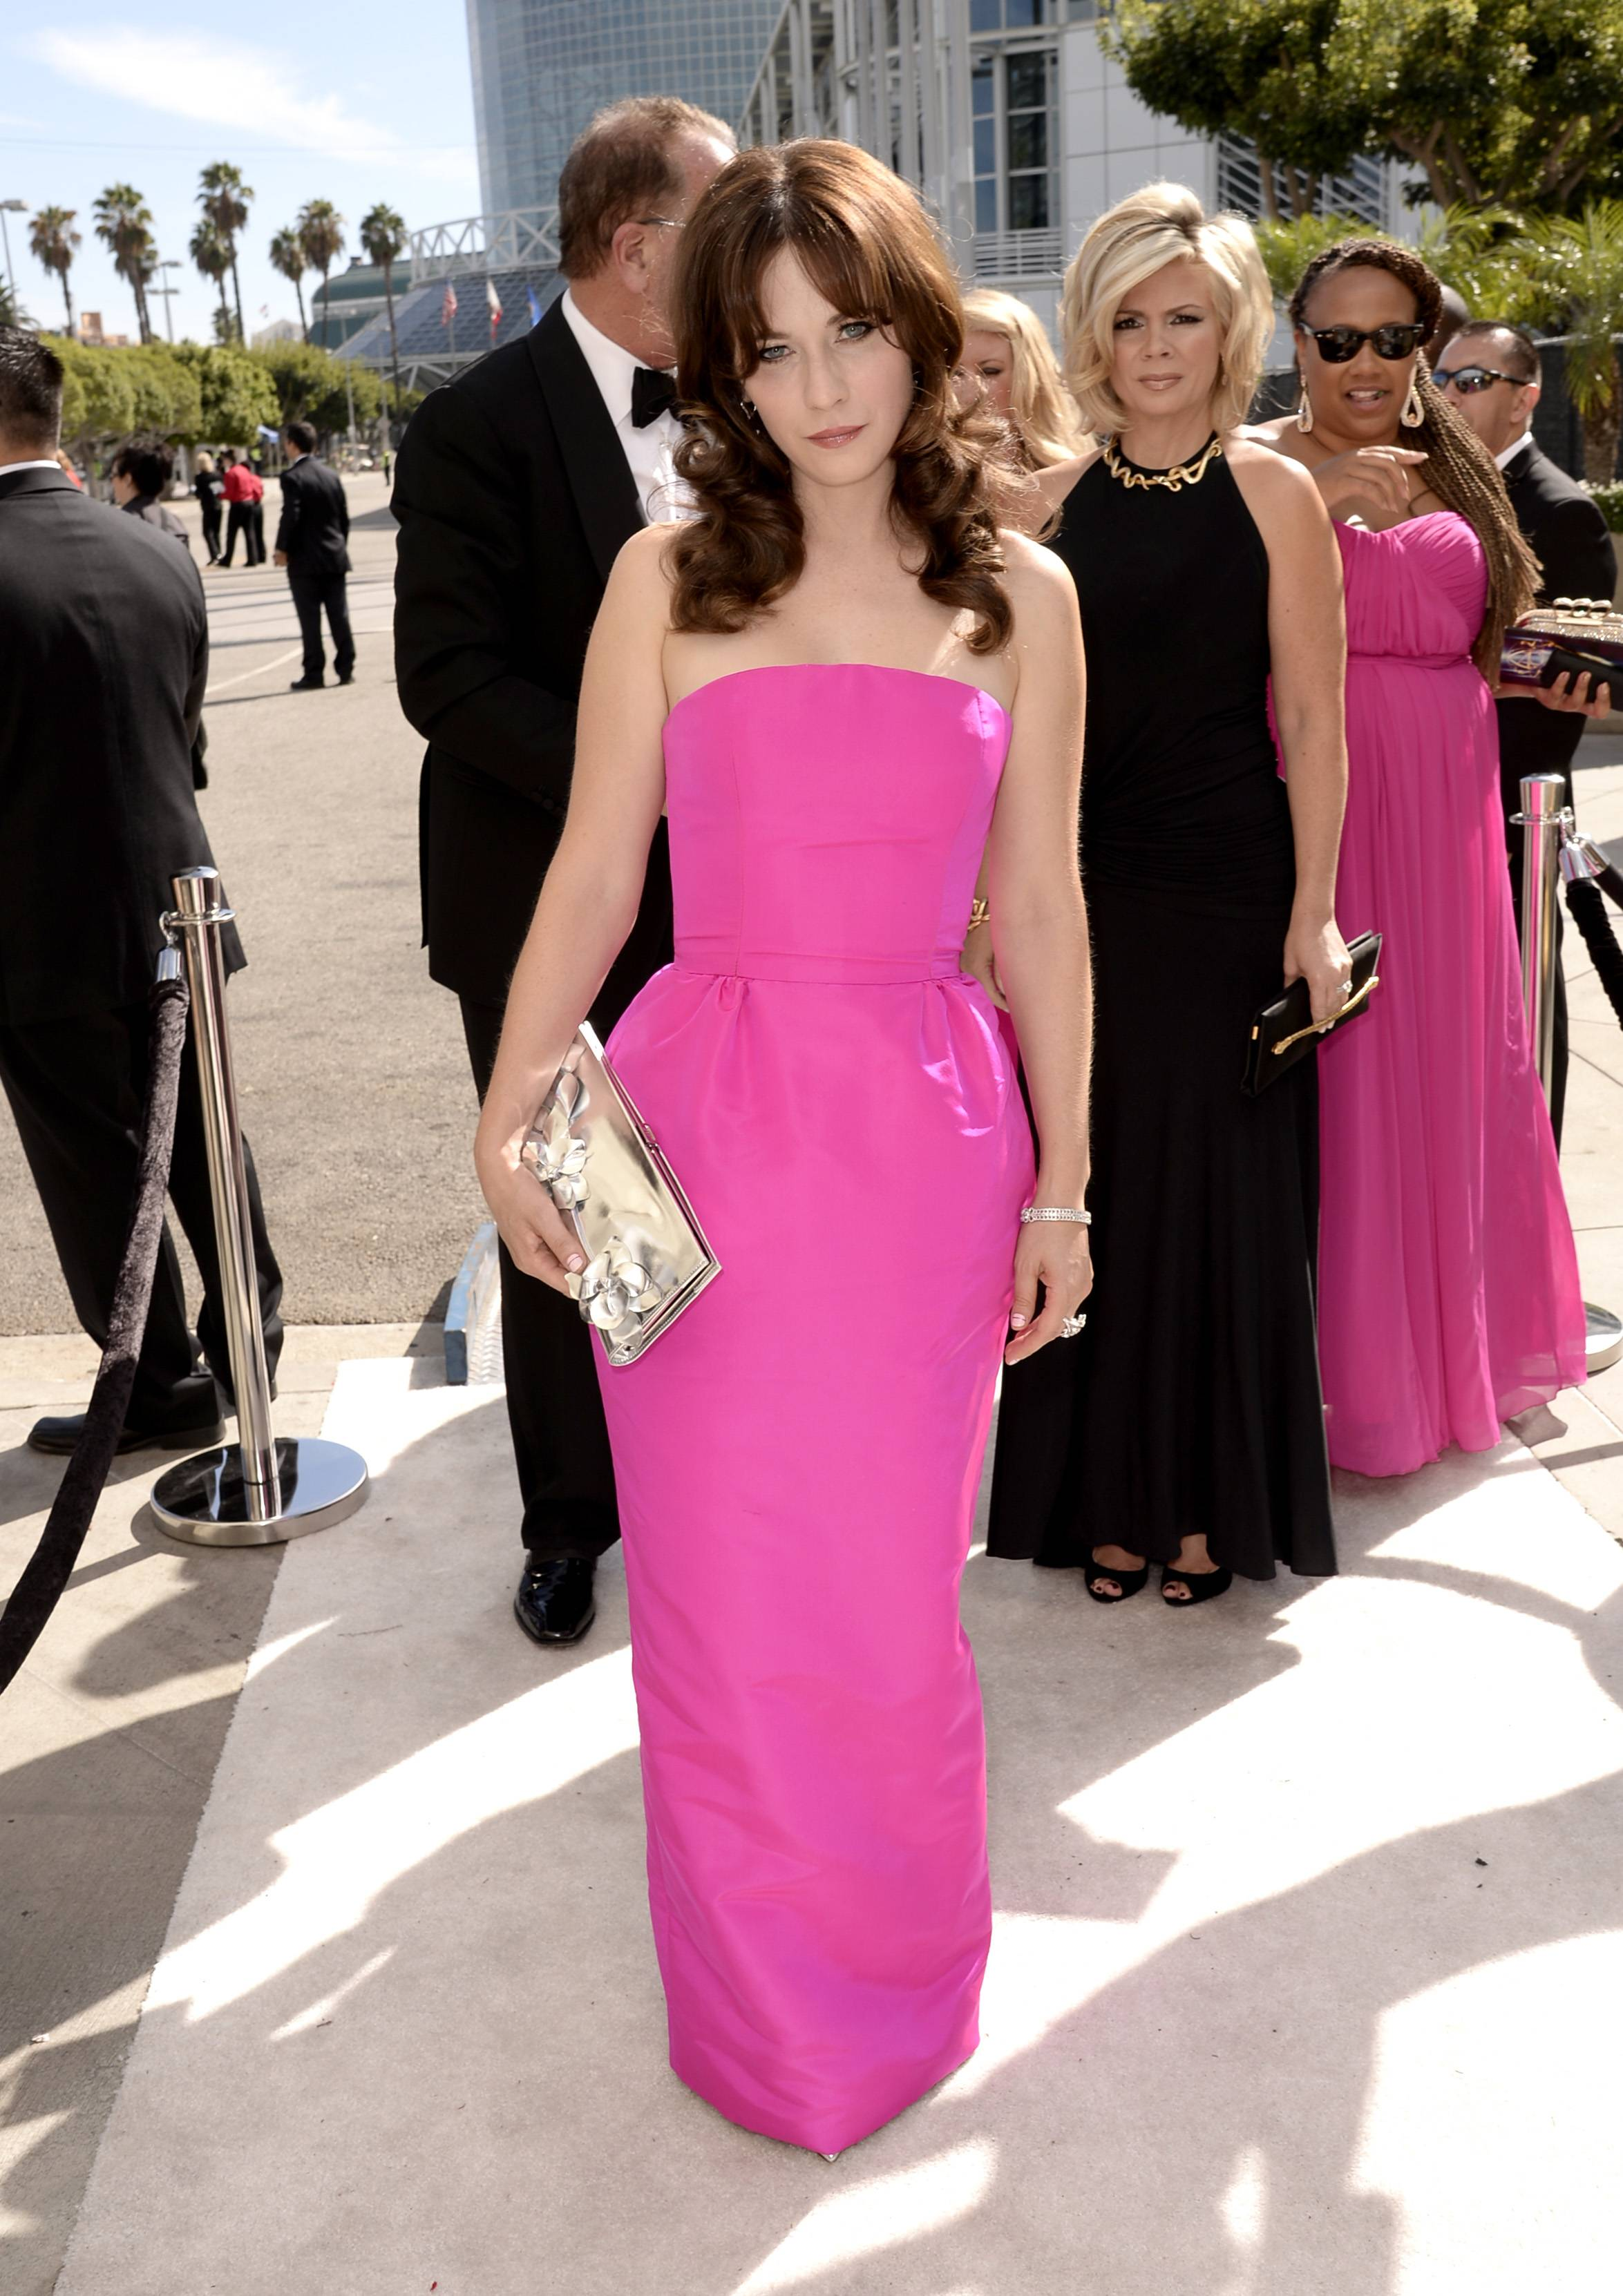 Zooey Deschanel arrives at the 66th Primetime Emmy Awards at the Nokia Theatre.